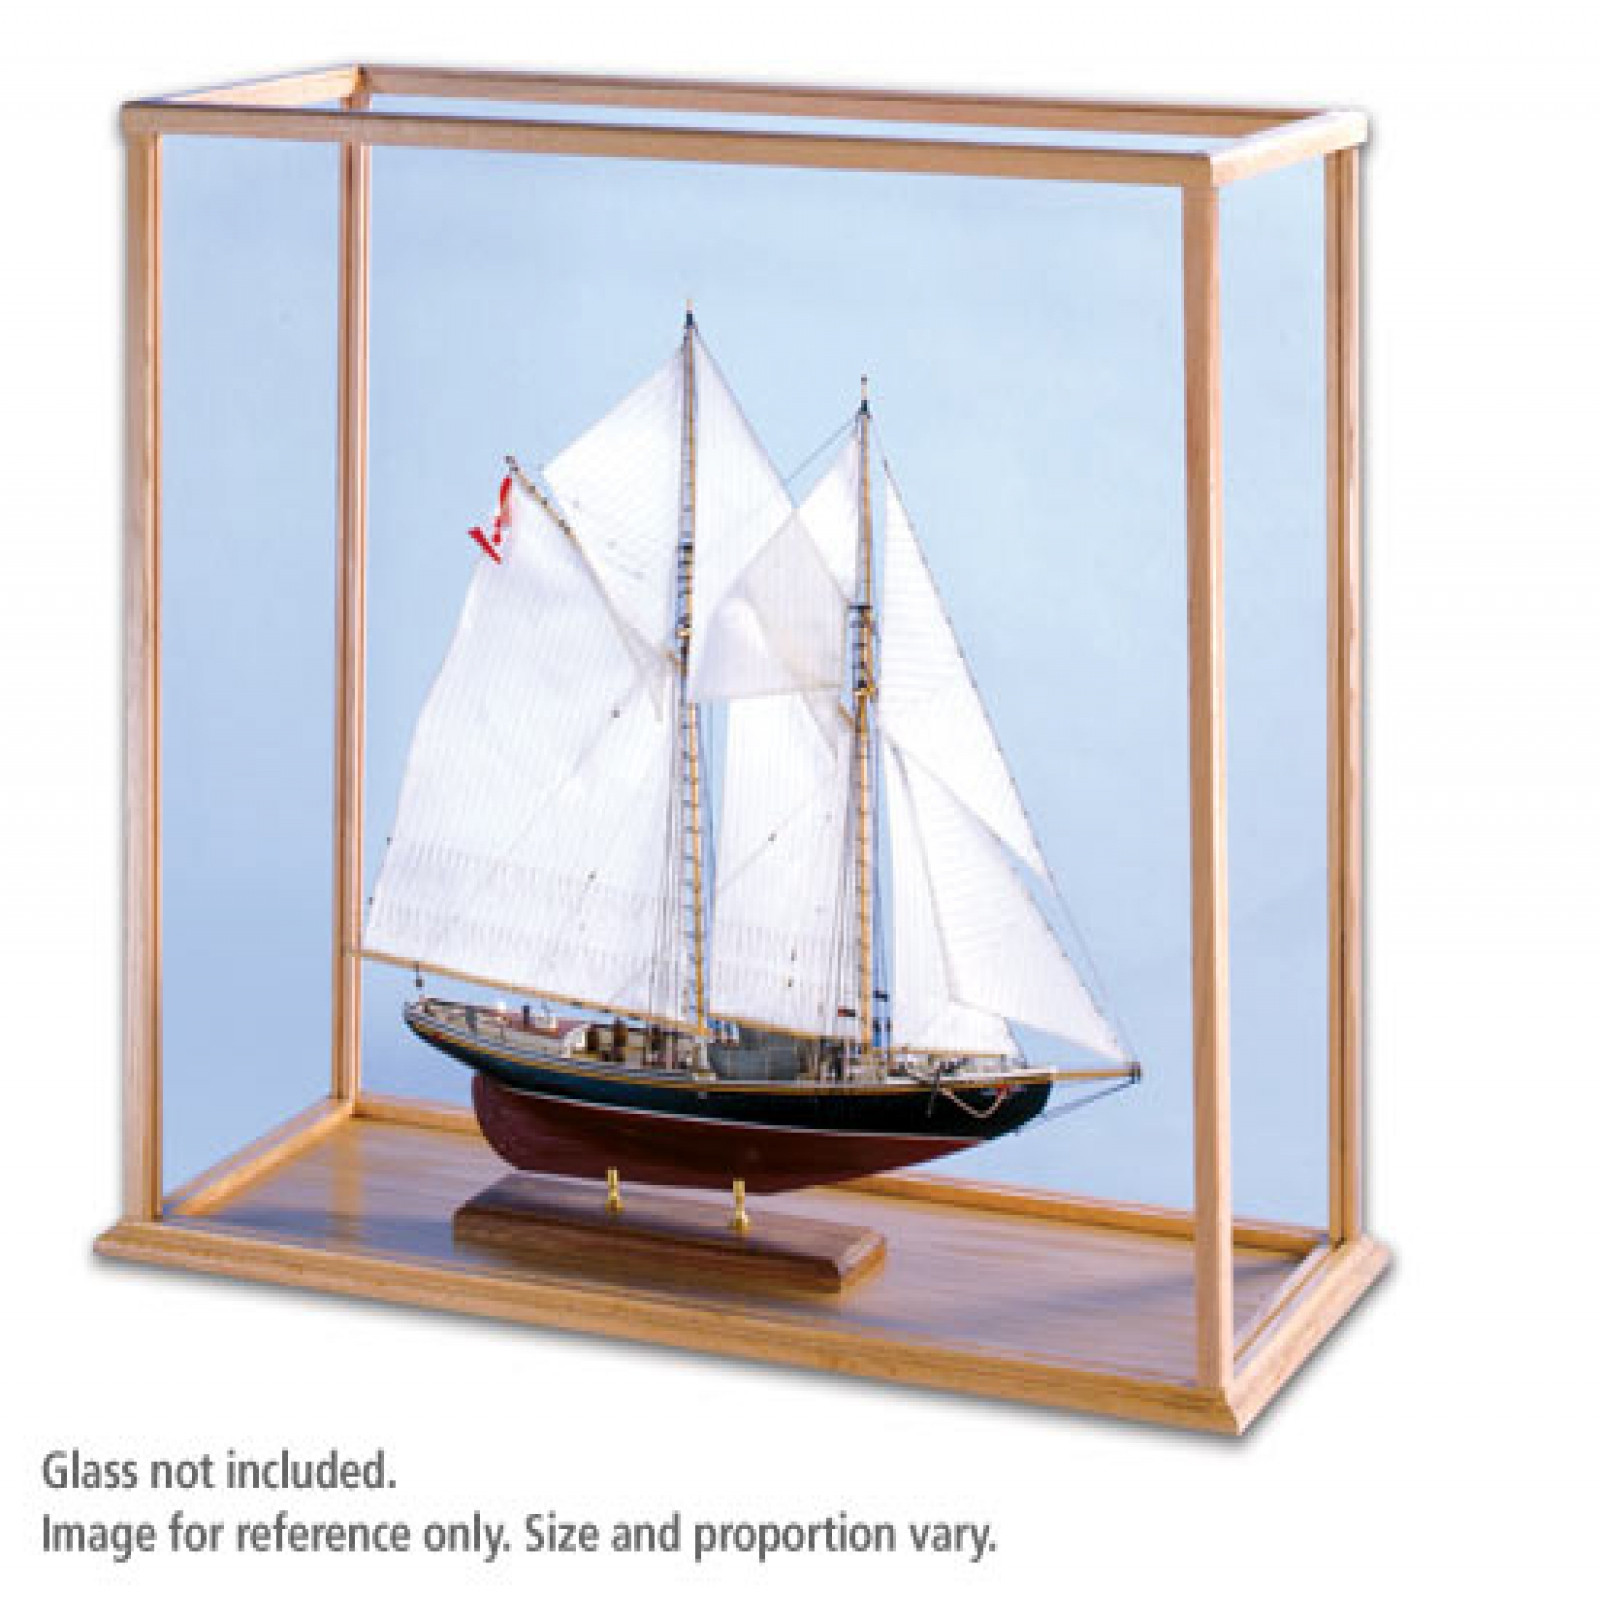 OAK SHIP MODEL CASE   L48 X W16 X H32   KIT